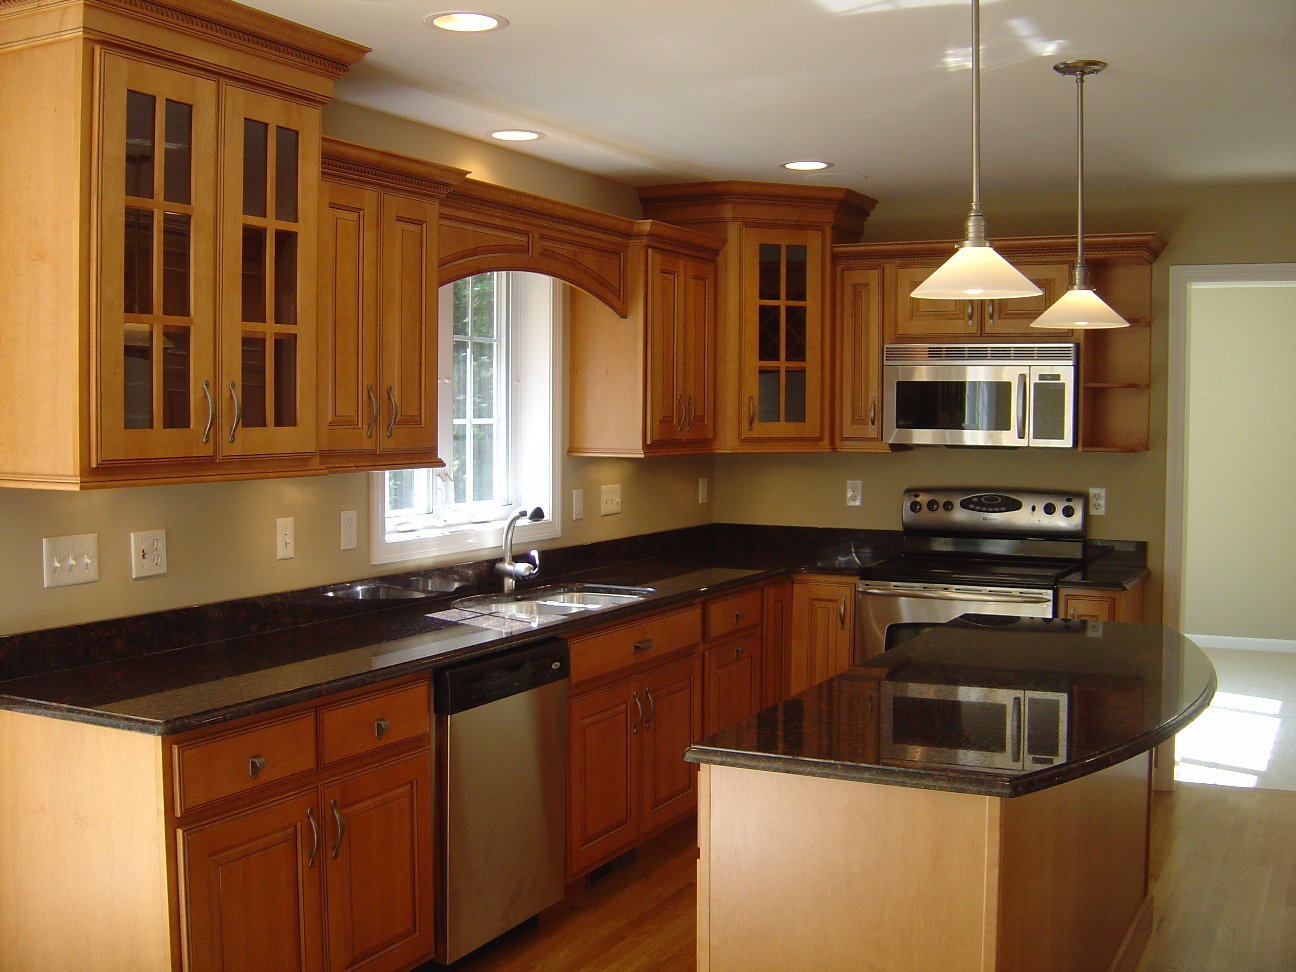 Top Kitchen Design 35 Kitchen Design For Your Home